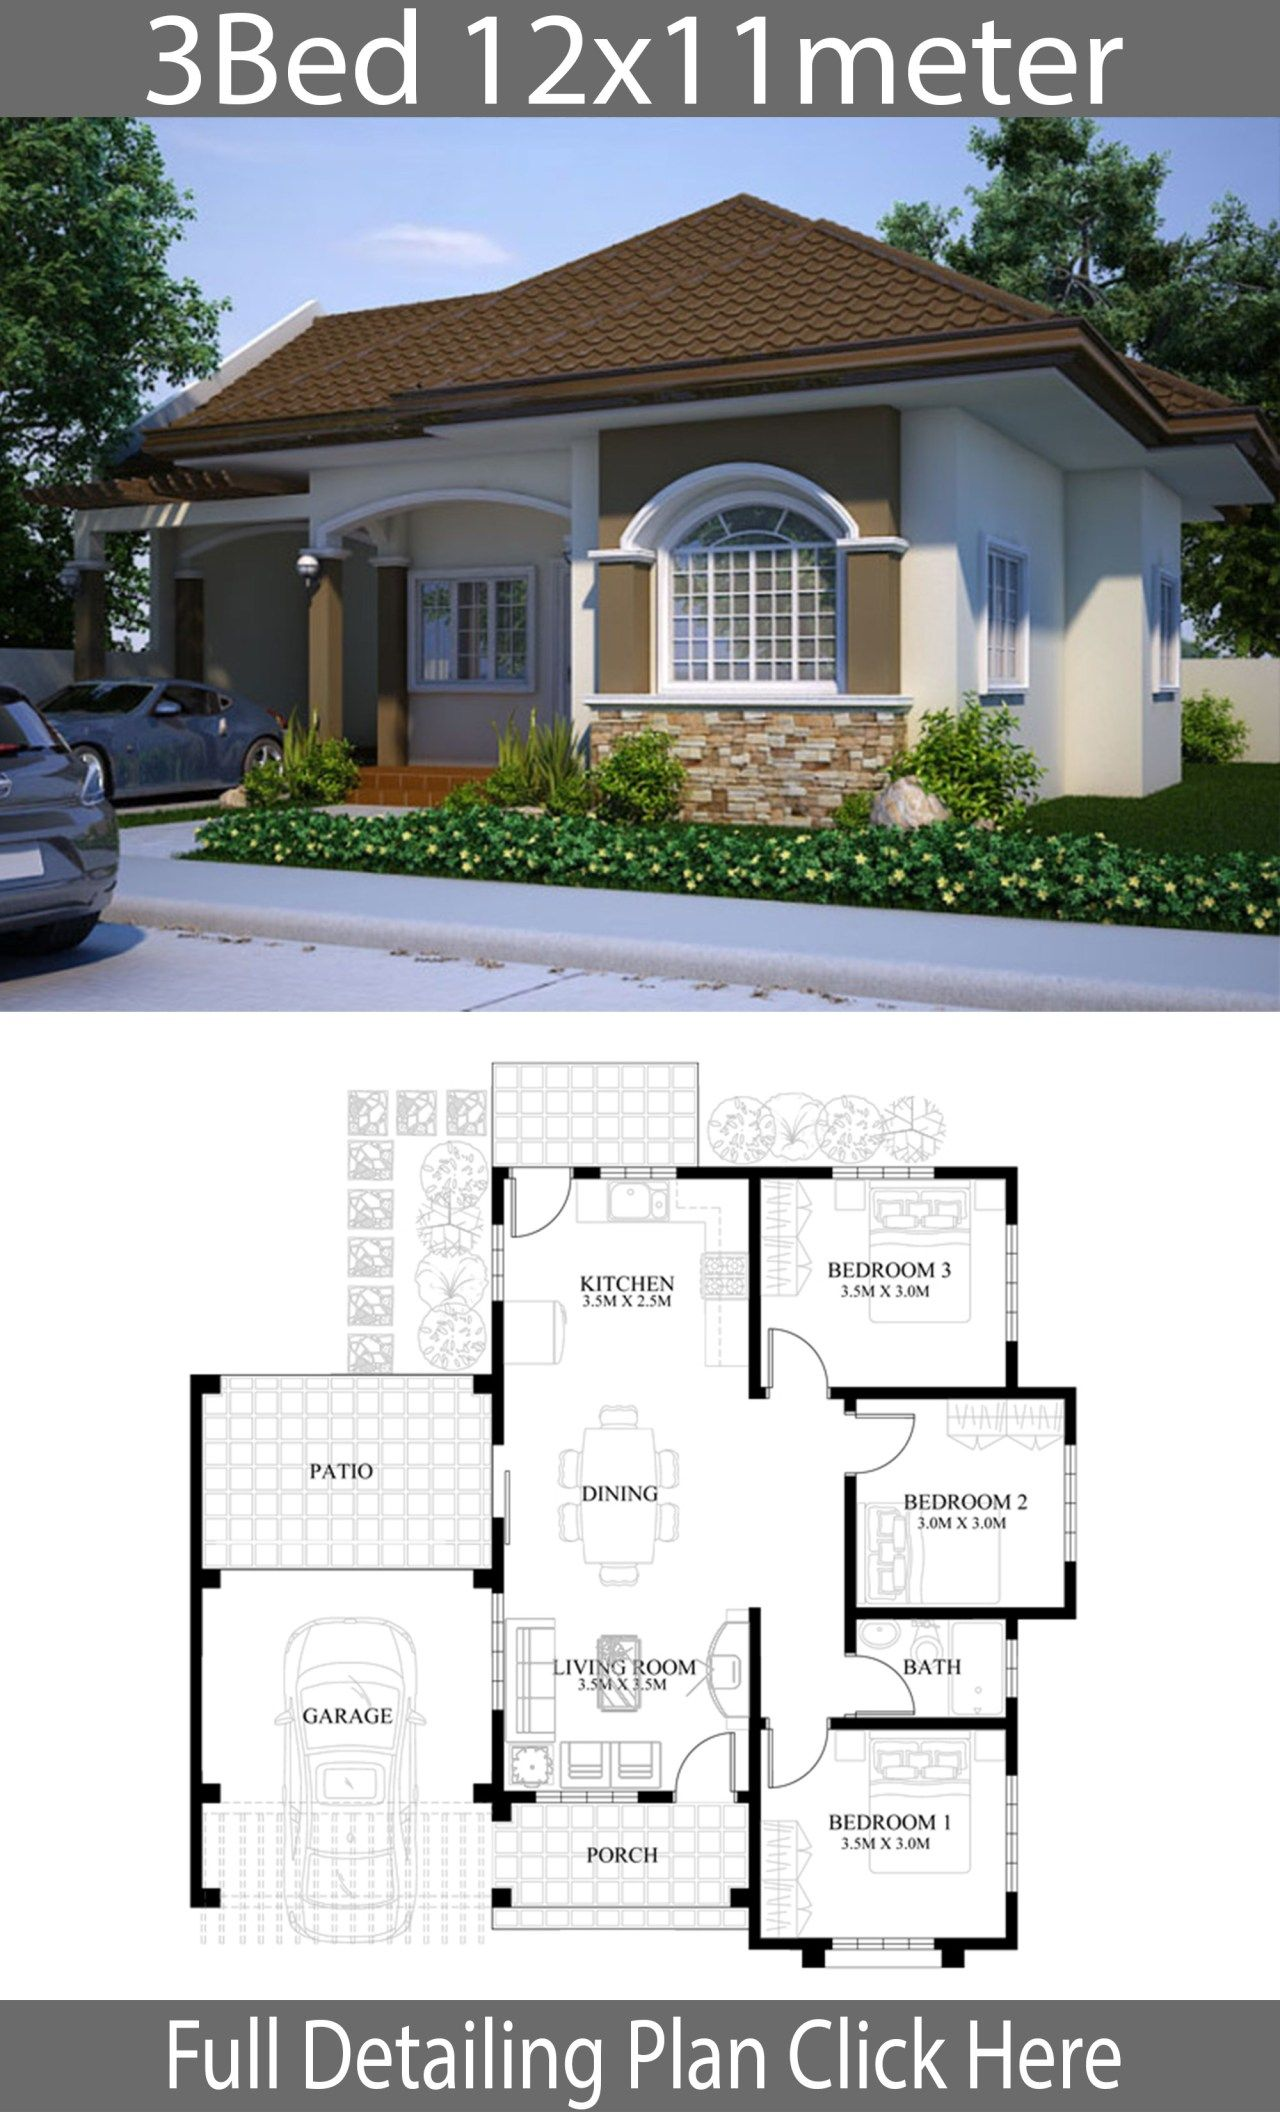 Small House Design Plan 11x12m With 3 Bedrooms Home Ideas Small House Design Plans Small House Design Model House Plan